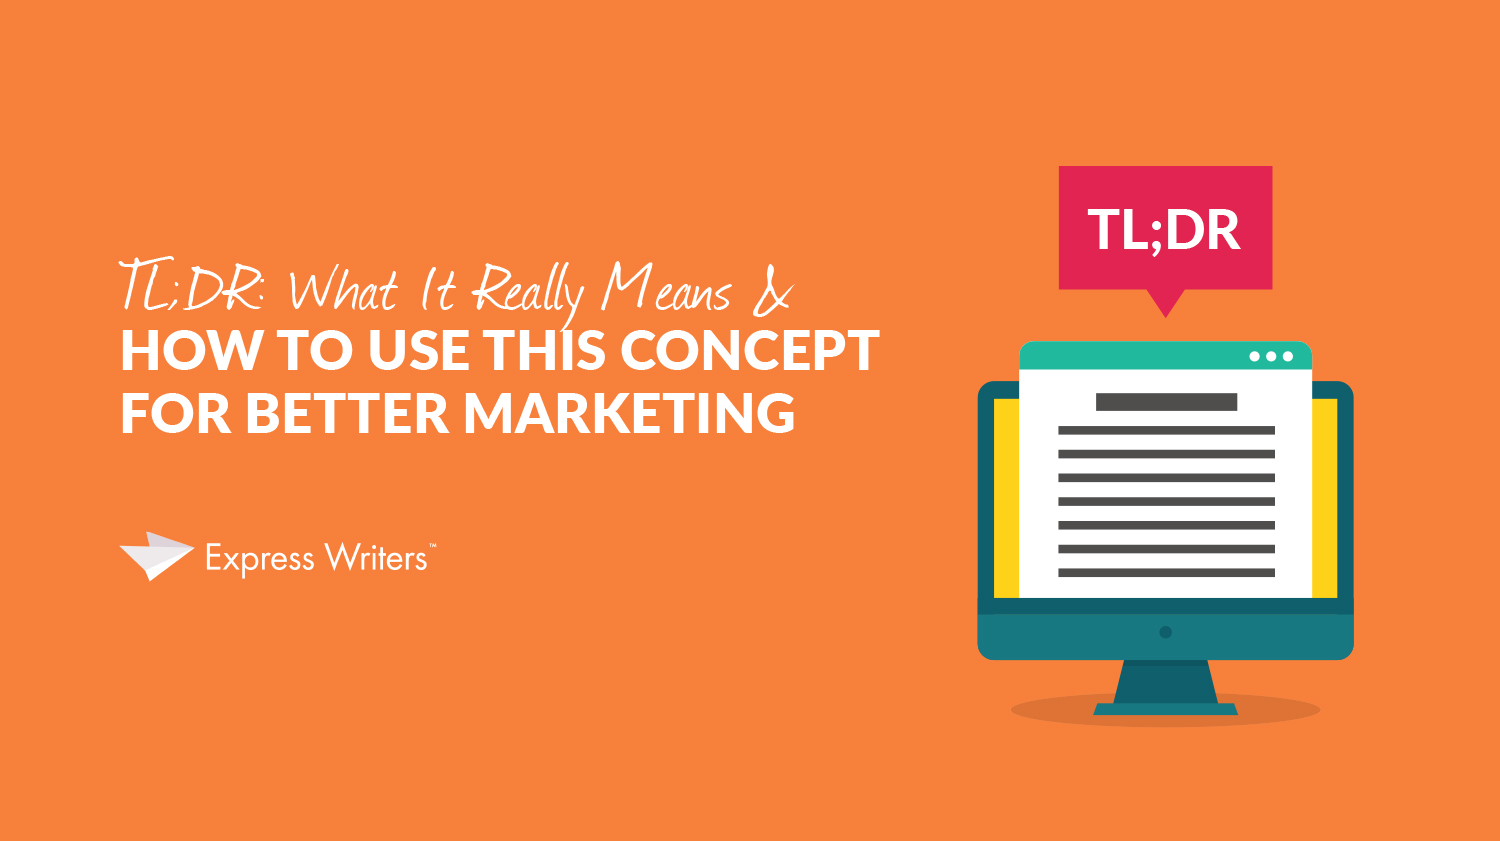 TL;DR: What It Really Means & How To Use This Concept For Better Marketing